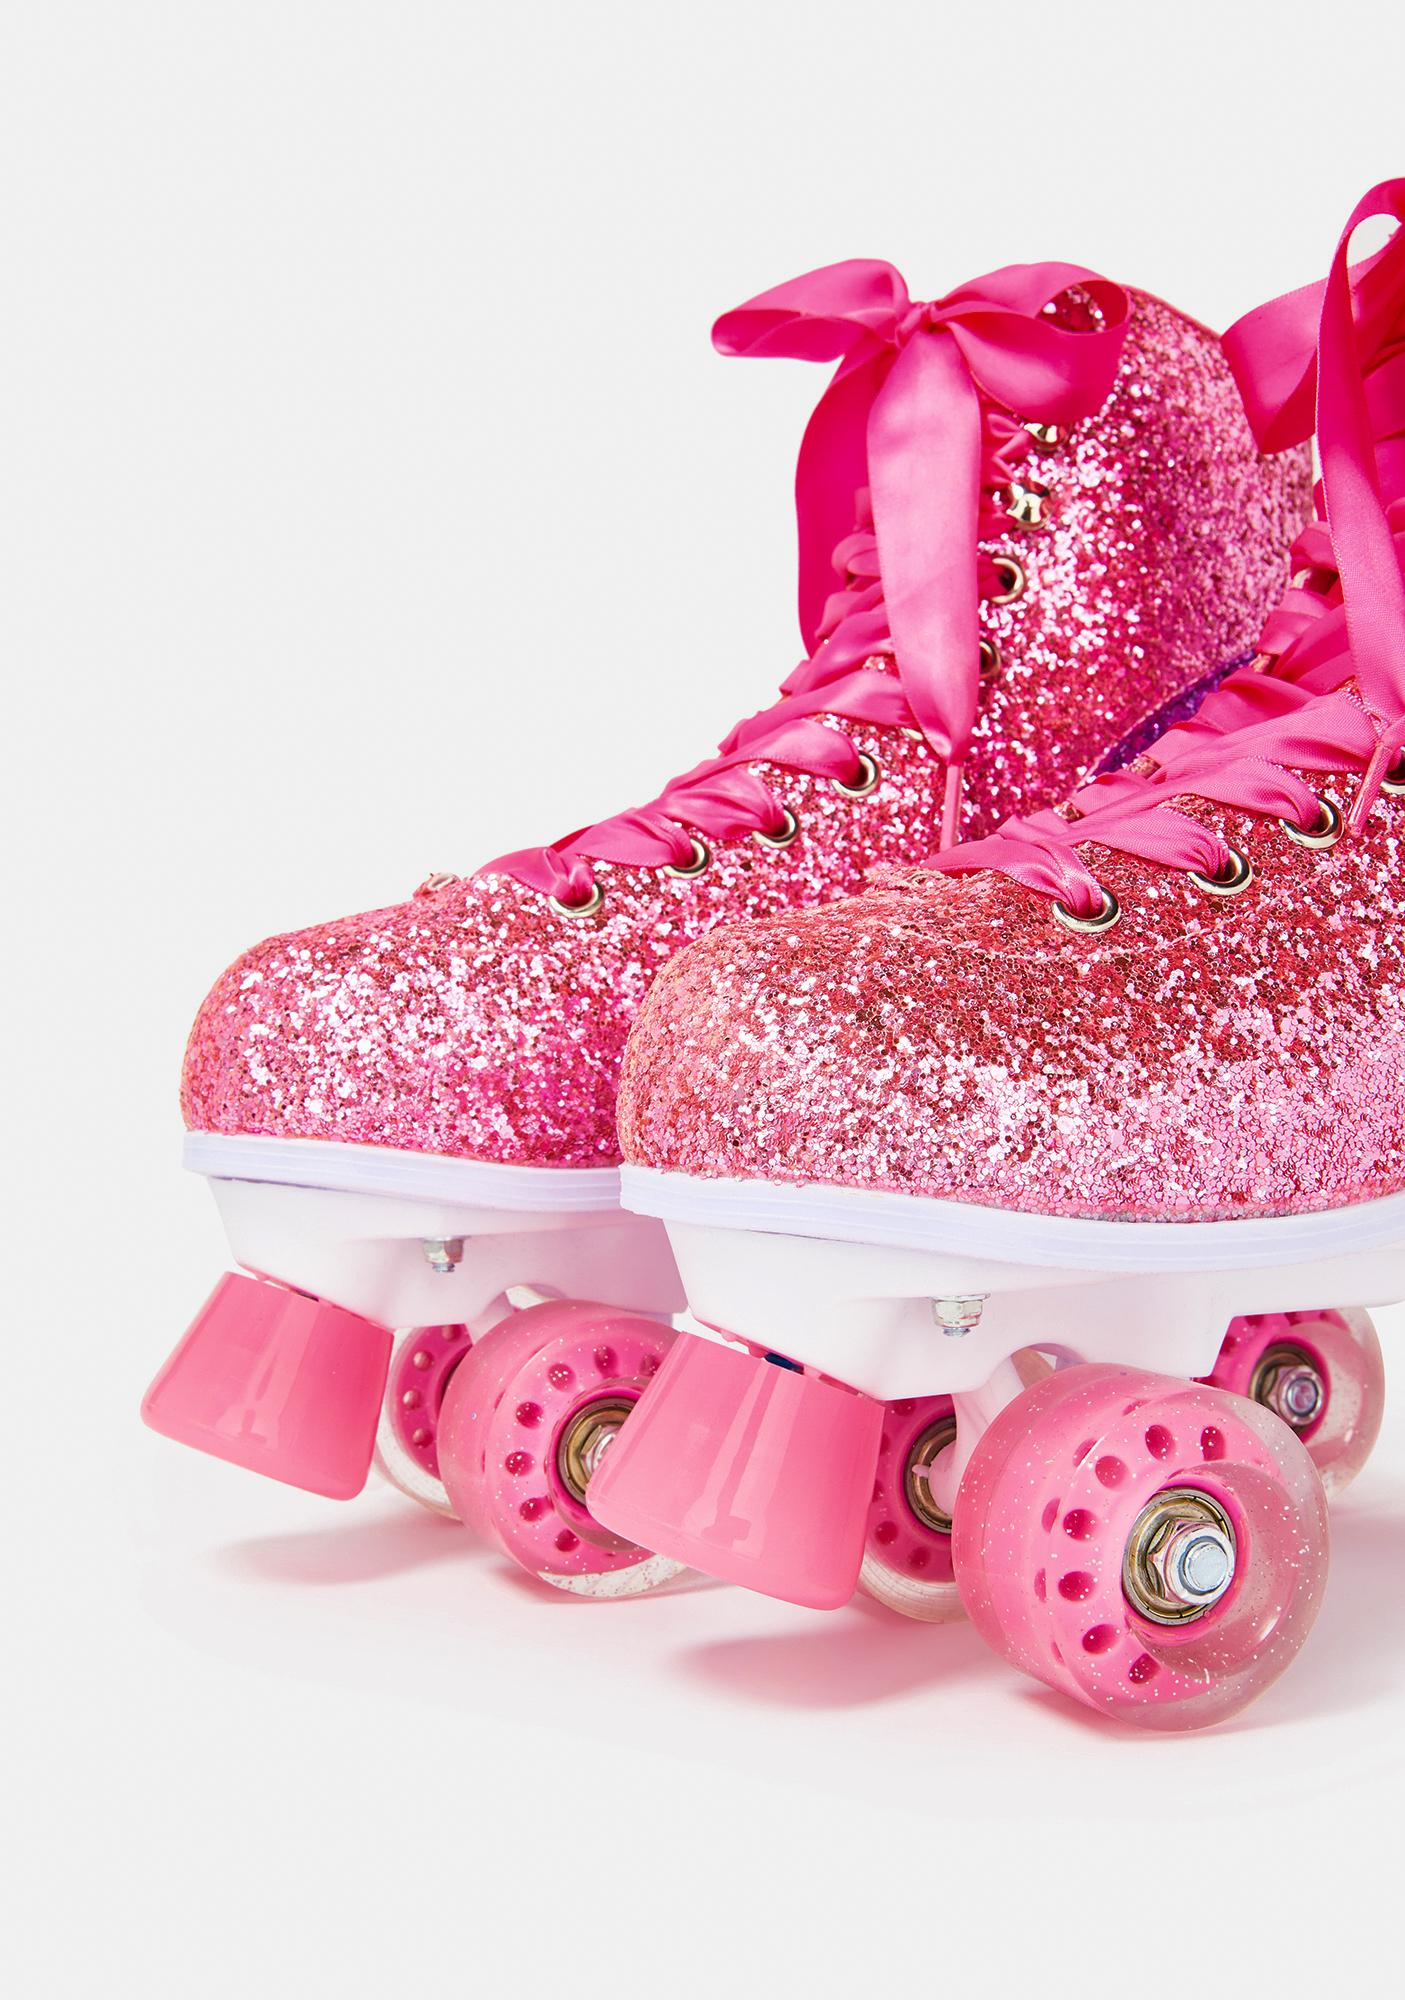 Impala Rollerskates Pink 2 Pack Stopper With Bolts